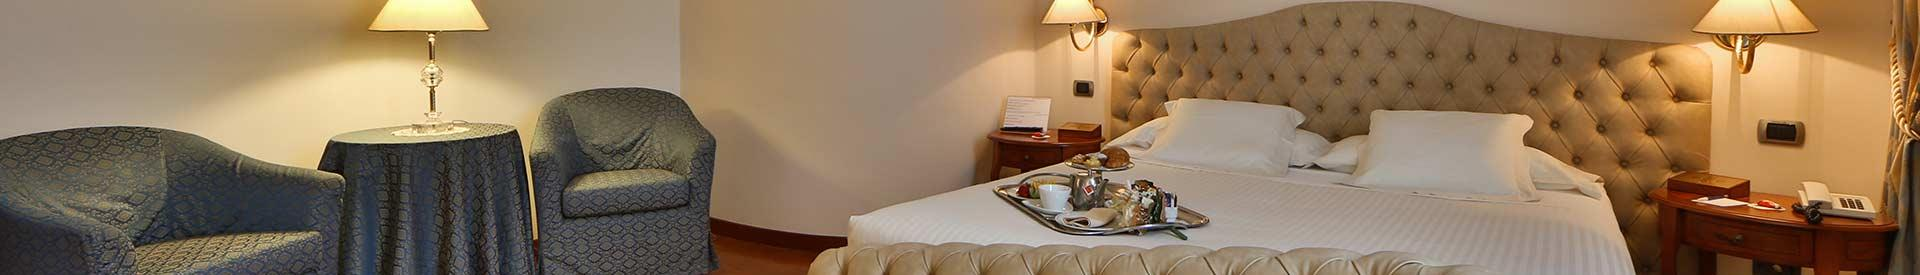 Looking for a hotel for your stay in Forlì (FC)? Book/reserve at the Best Western Hotel Globus City